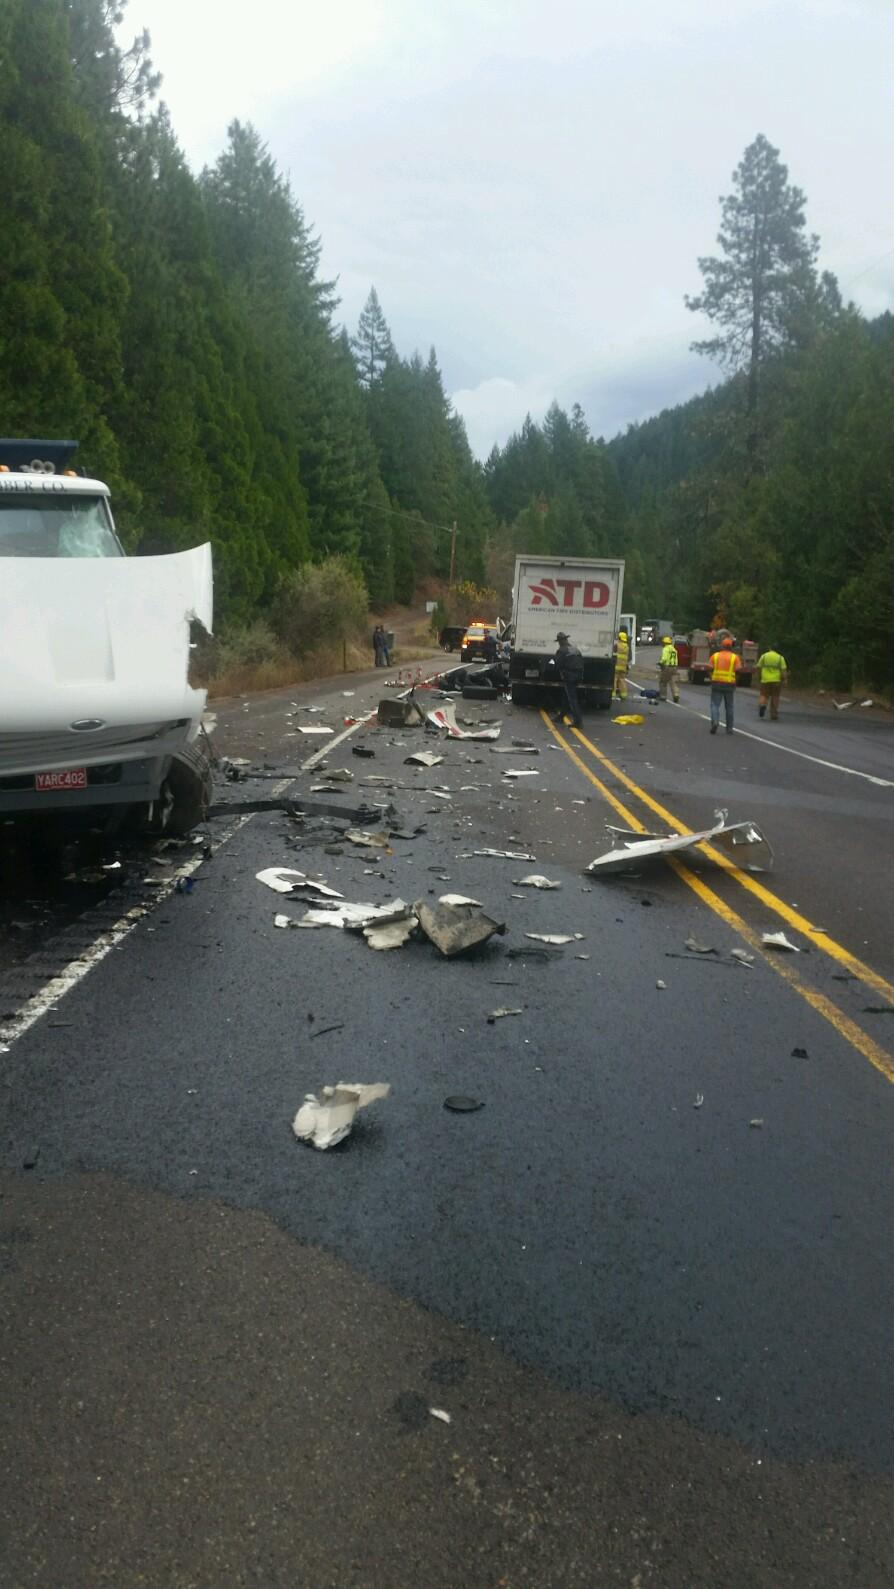 Accident scene on ORE140 where a Shady Cove Man loses life.